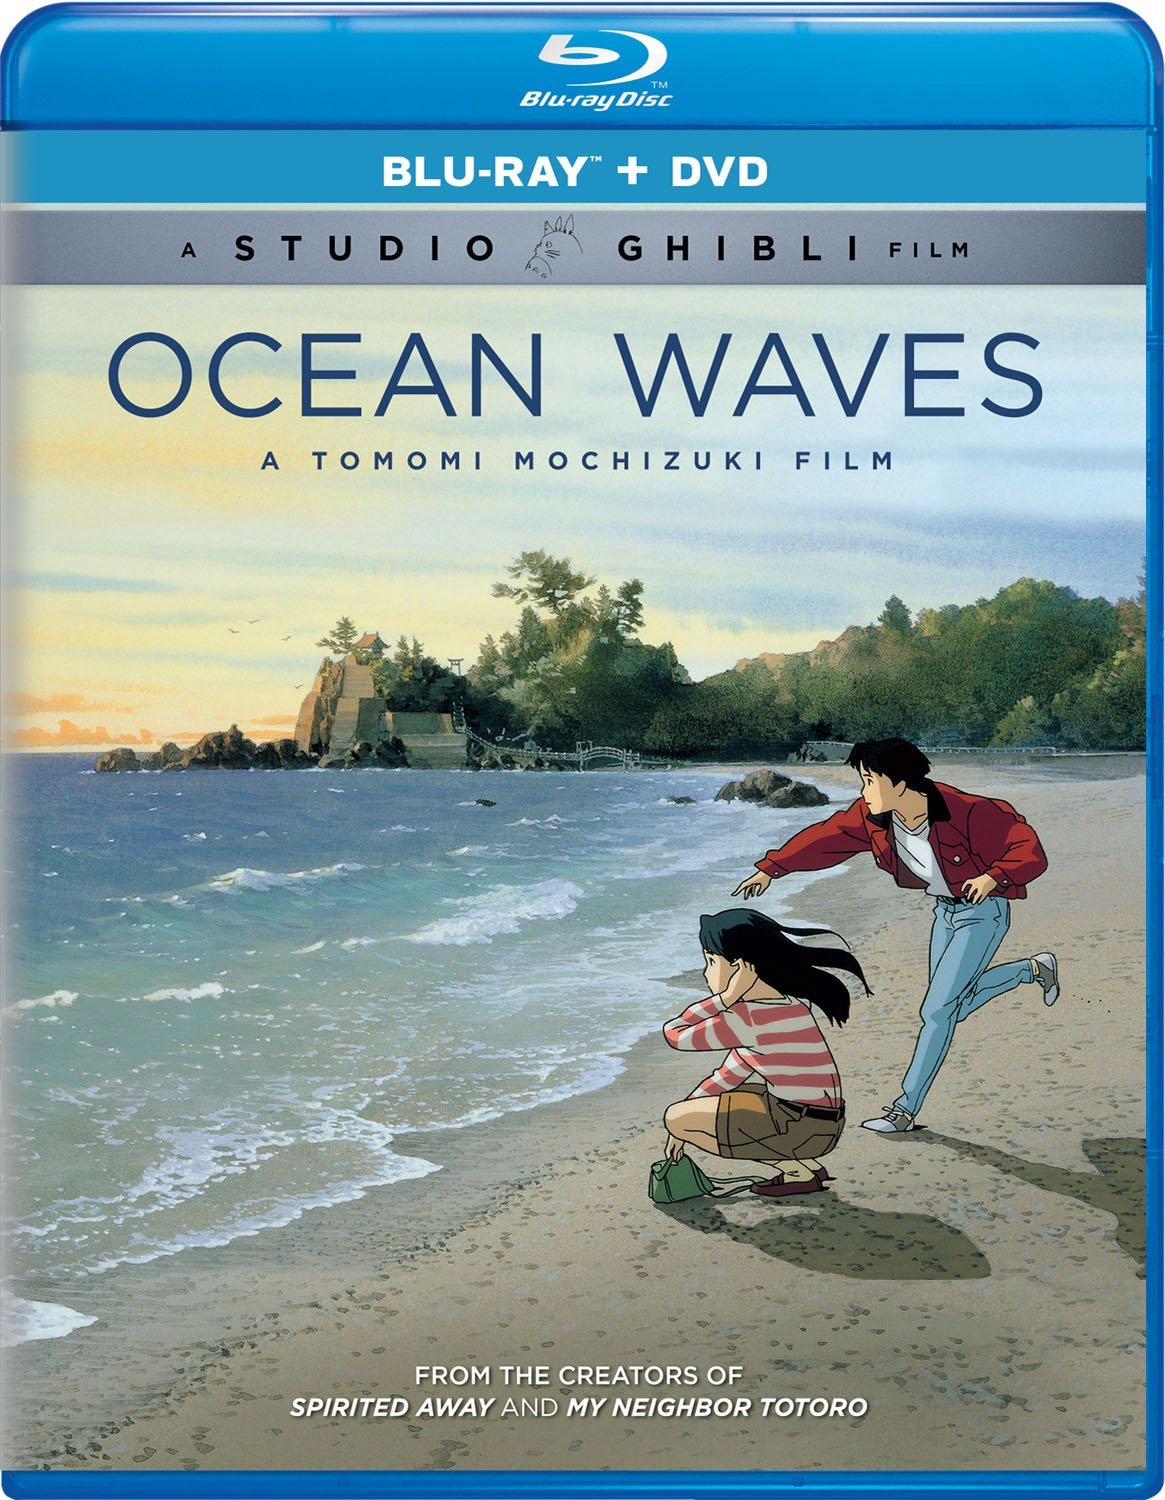 Ocean Waves Blu-ray/DVD 191329017104